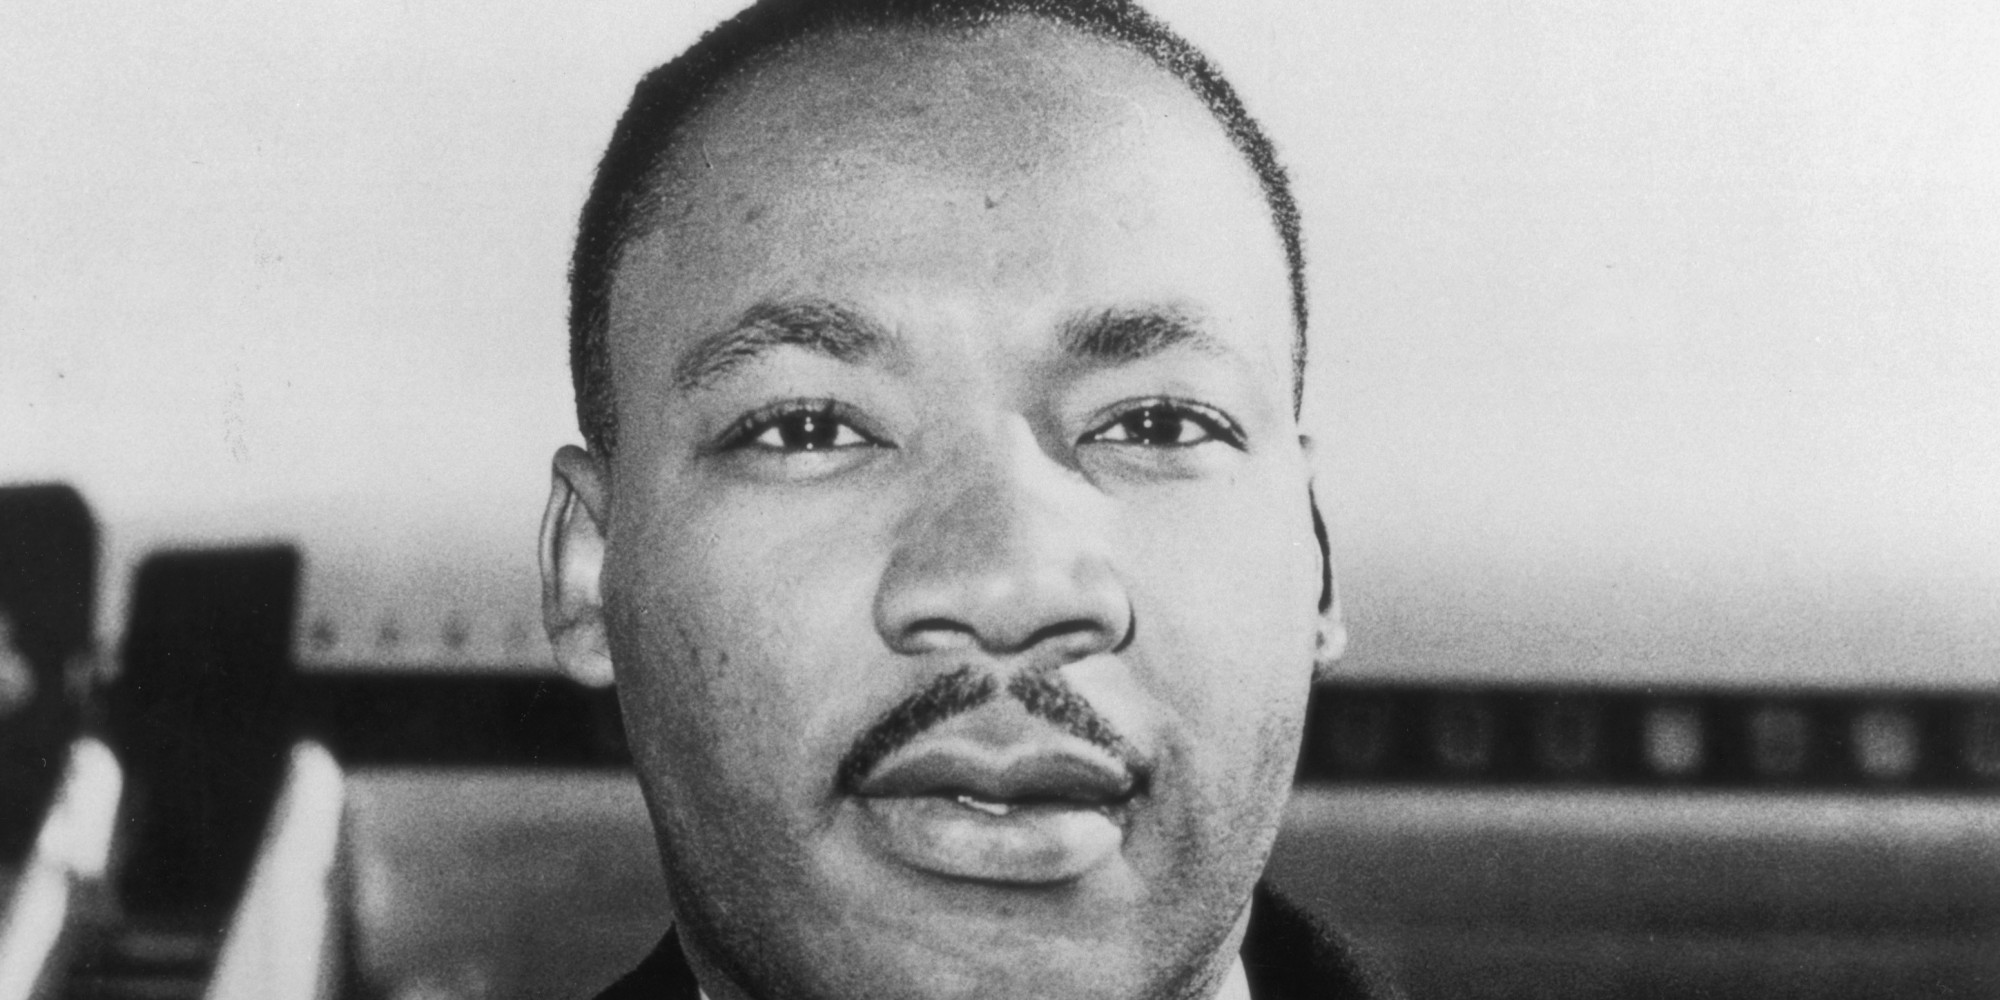 martin luther king jr - photo #36